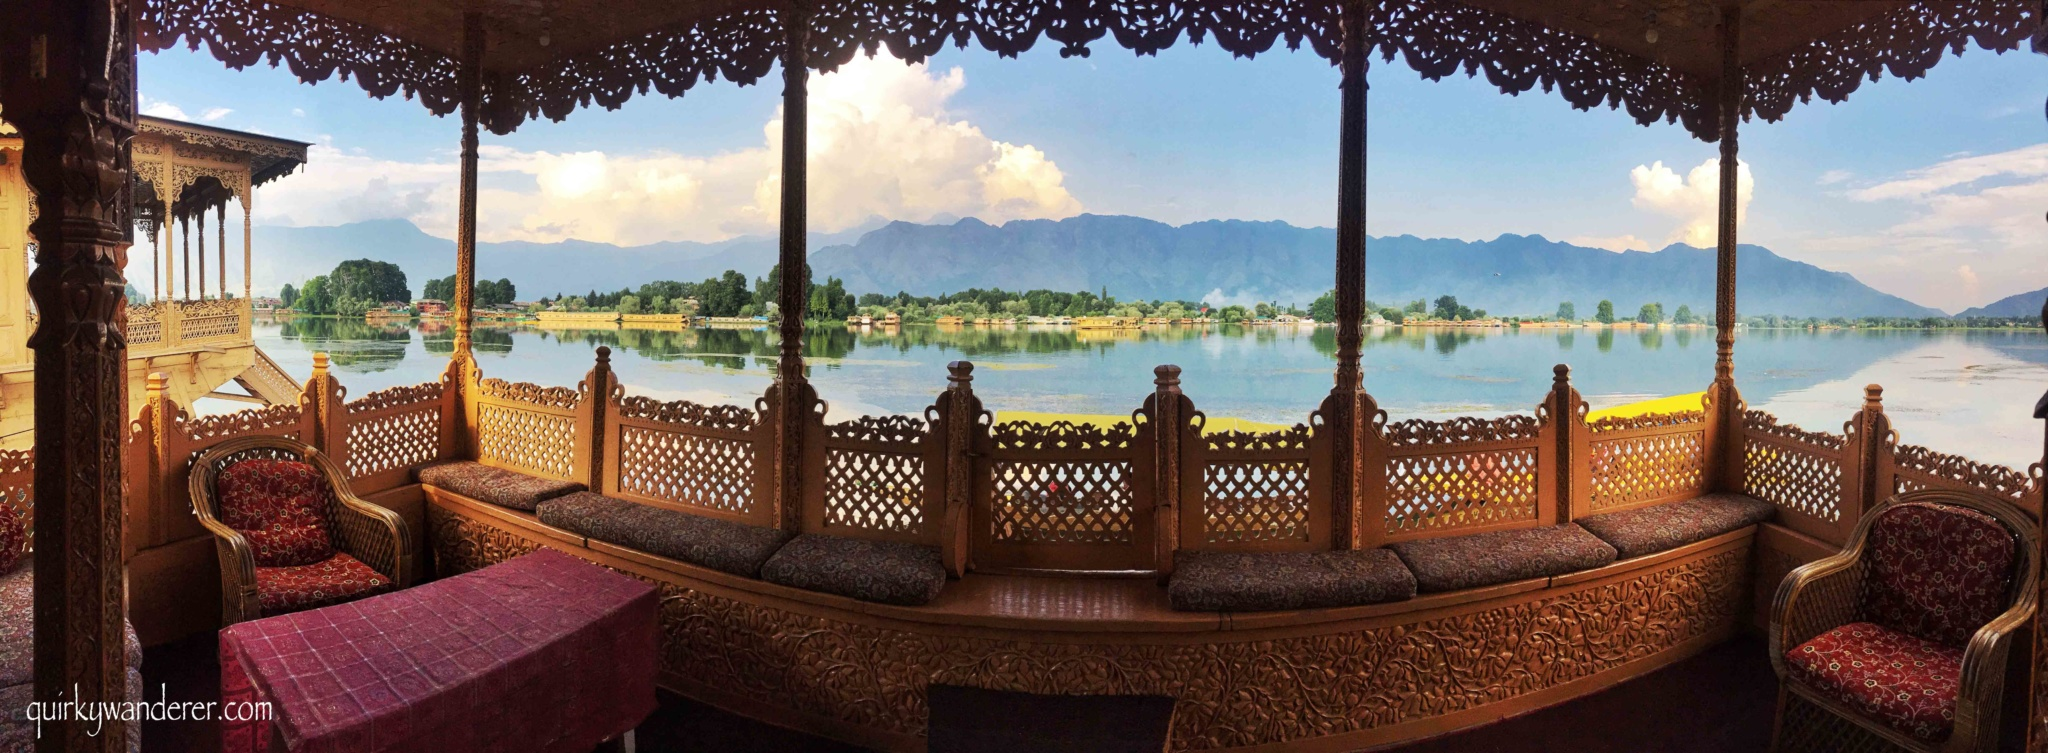 Houseboats in Nigeen lake Srinagar